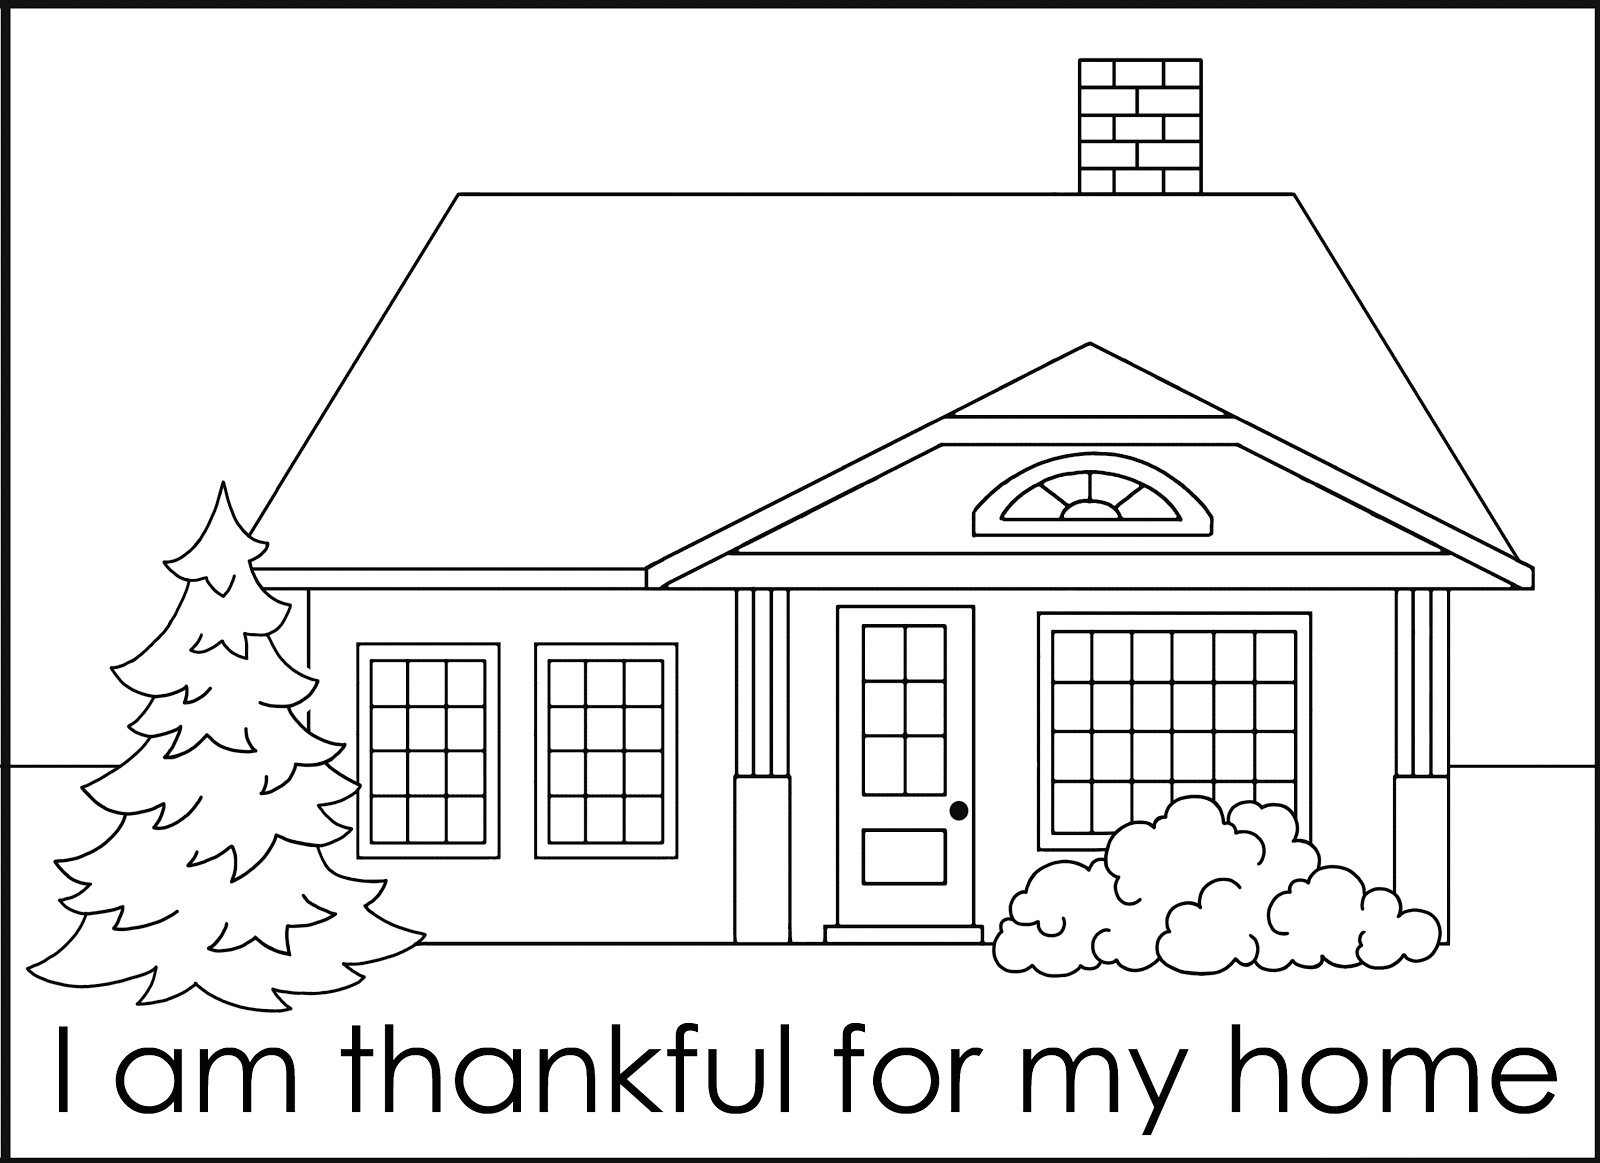 I Am Thankful for My Home Coloring Page Green Jello with Carrots November 2012